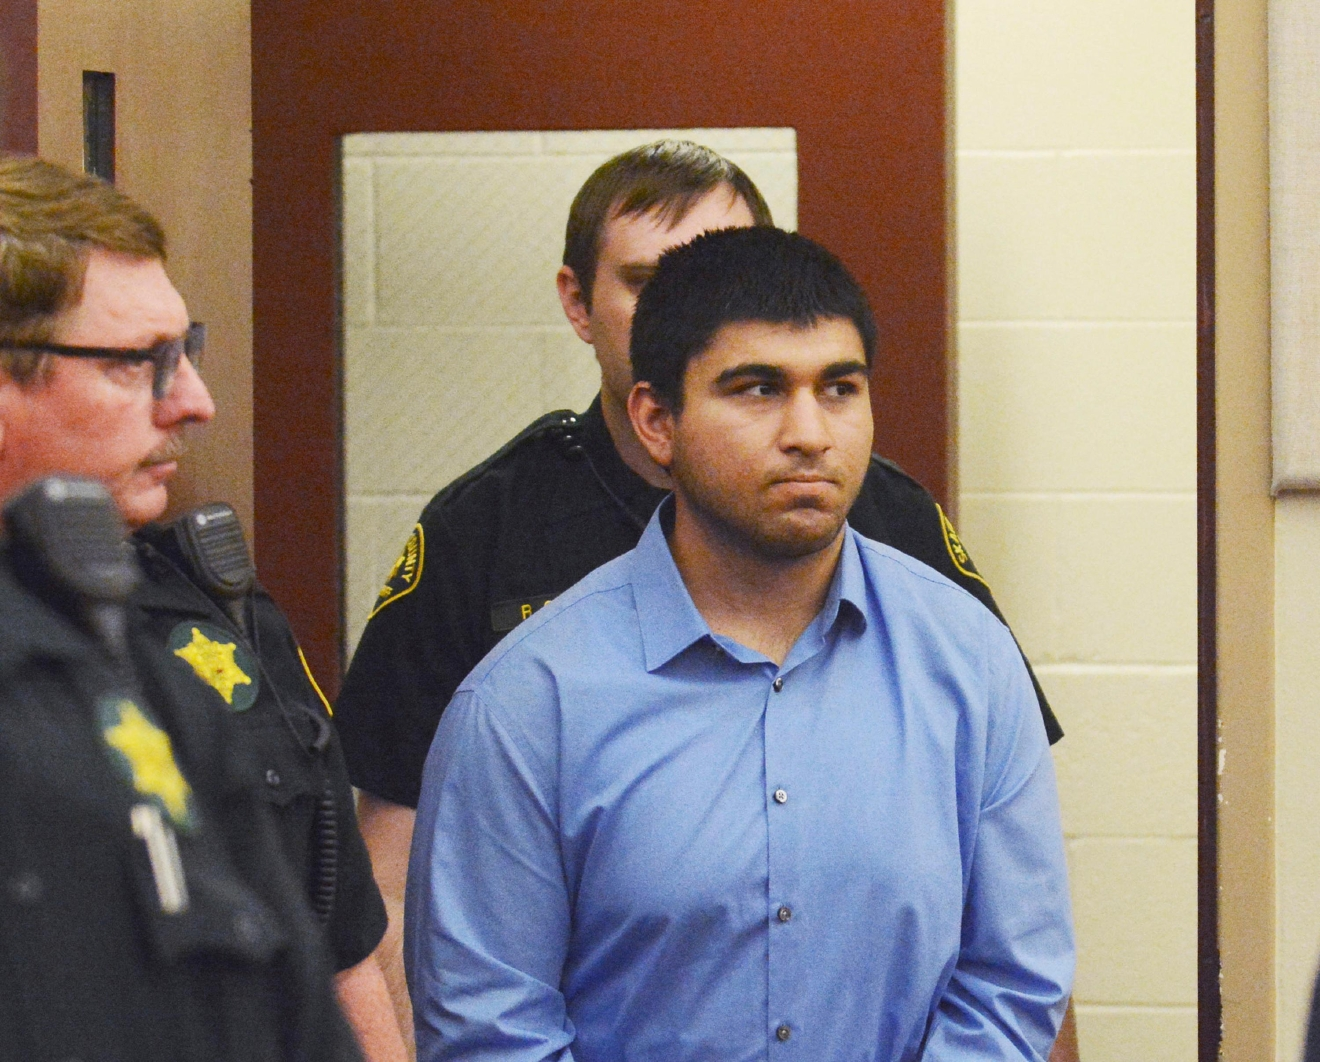 FILE - In this Monday, Sept. 26, 2016, file photo, Arcan Cetin is escorted into Skagit County District Court by Skagit County's Sheriff's Deputies, in Mount Vernon, Wash. Prosecutors plan to file charges against Cetin in the fatal shootings of five people at a Washington state shopping mall. (Brandy Shreve/Skagit Valley Herald via AP, File)